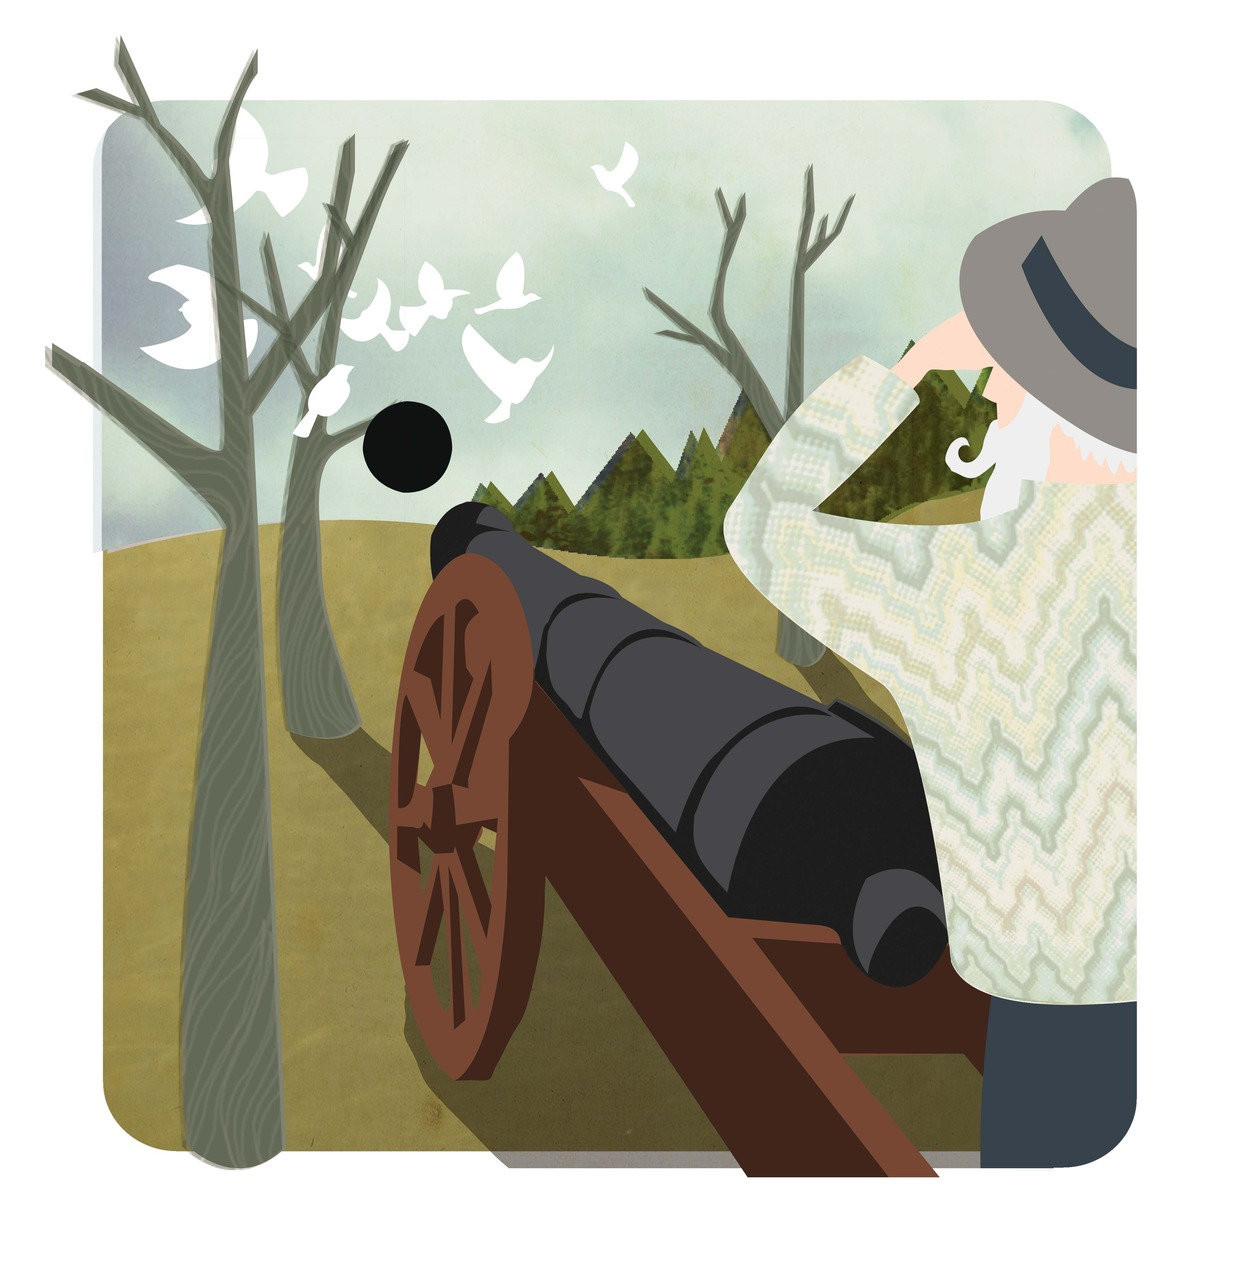 Hungarian idiom illustration. 'To shoot at sparrows with a cannon'. another illustration for my 'international dictionary of idioms' book that I'm working on.